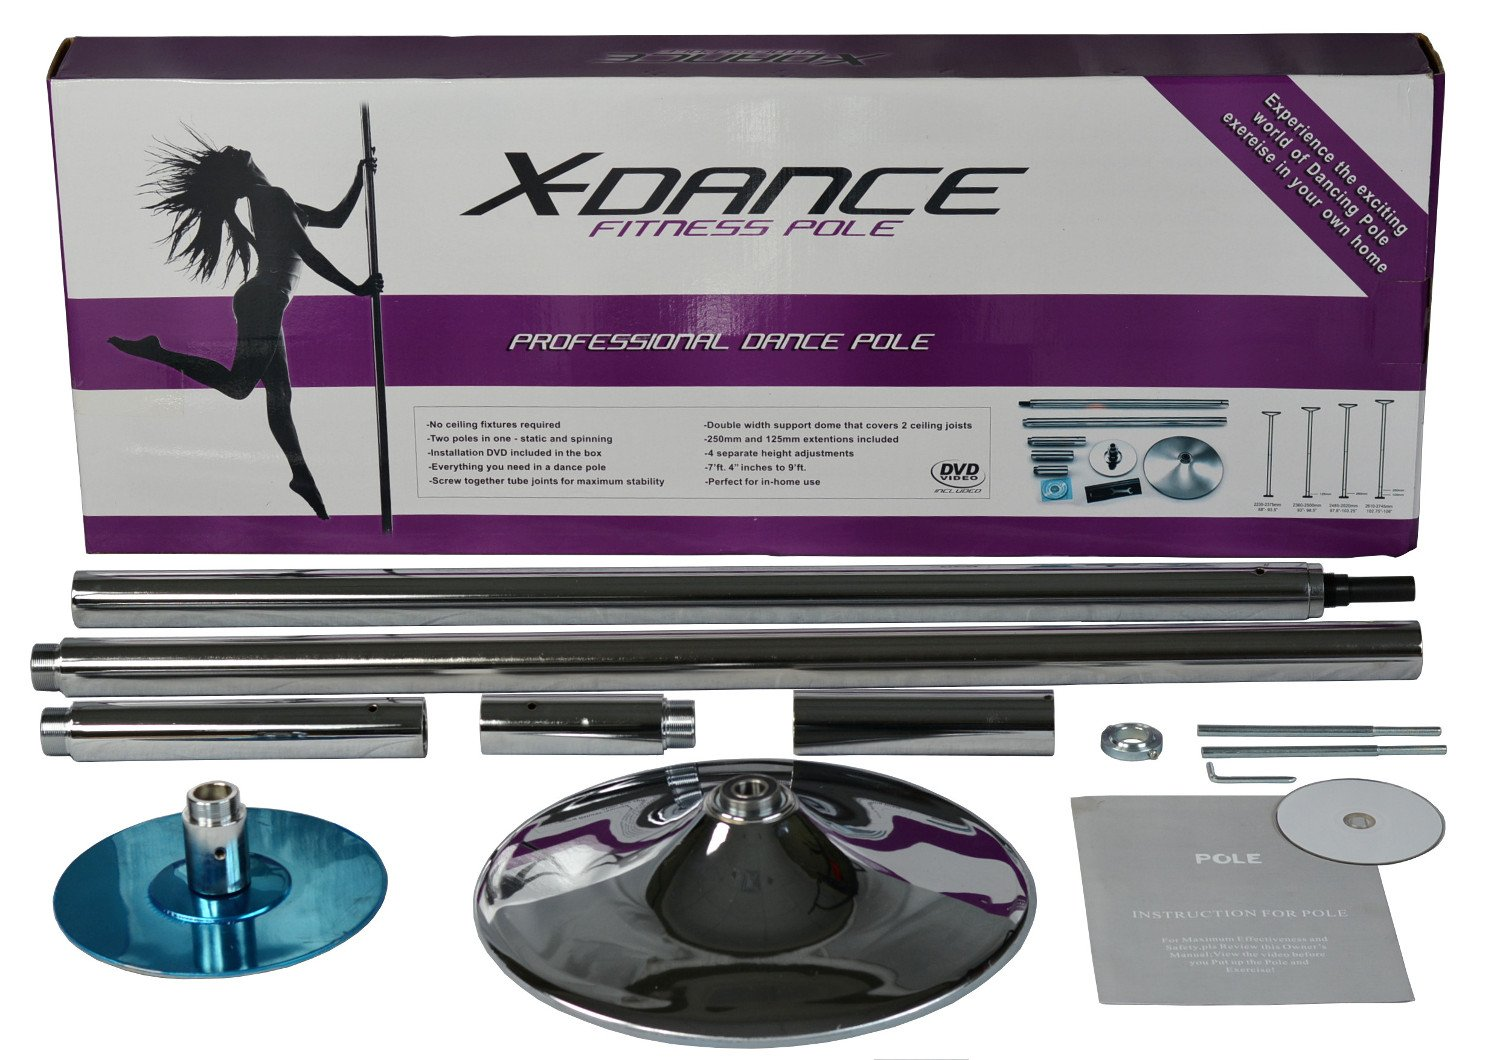 X-Dance Portable Fitness Exercise Spinning and Stationary Chrome Pole Dance 45mm